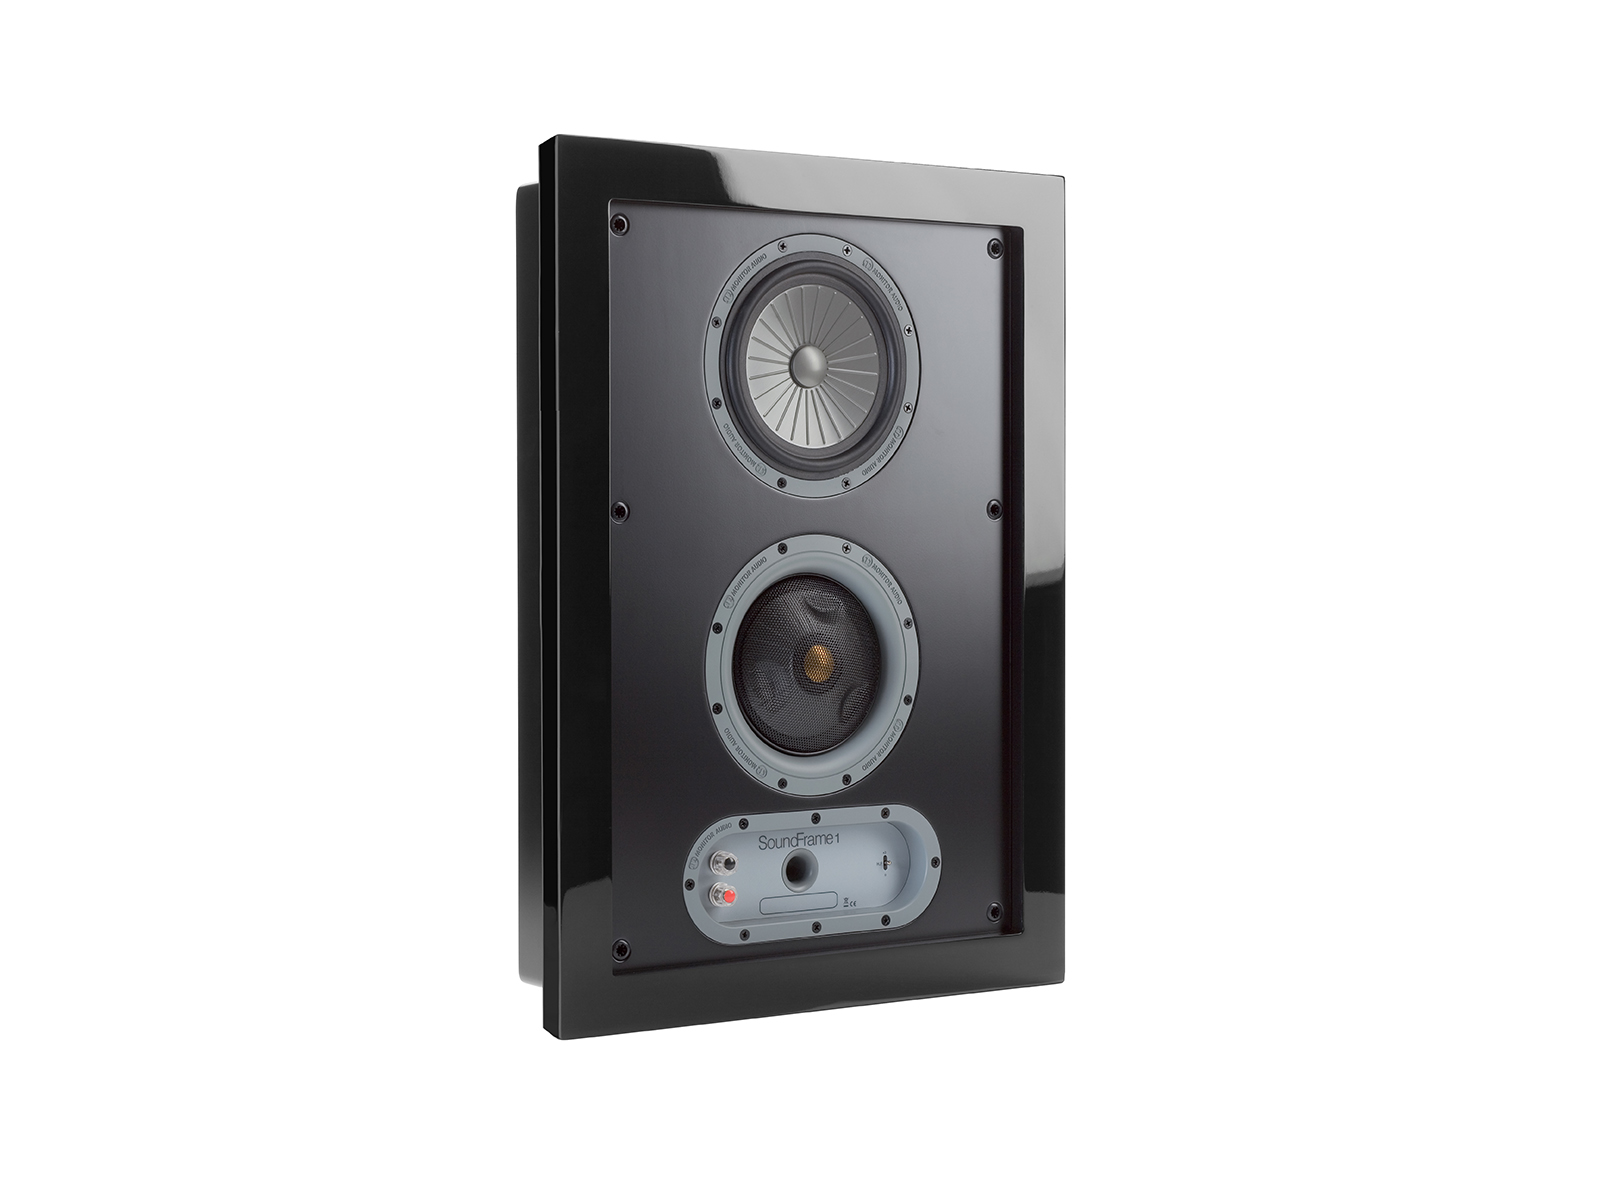 SoundFrame SF1, in-wall speakers, grille-less, with a high gloss black lacquer finish.